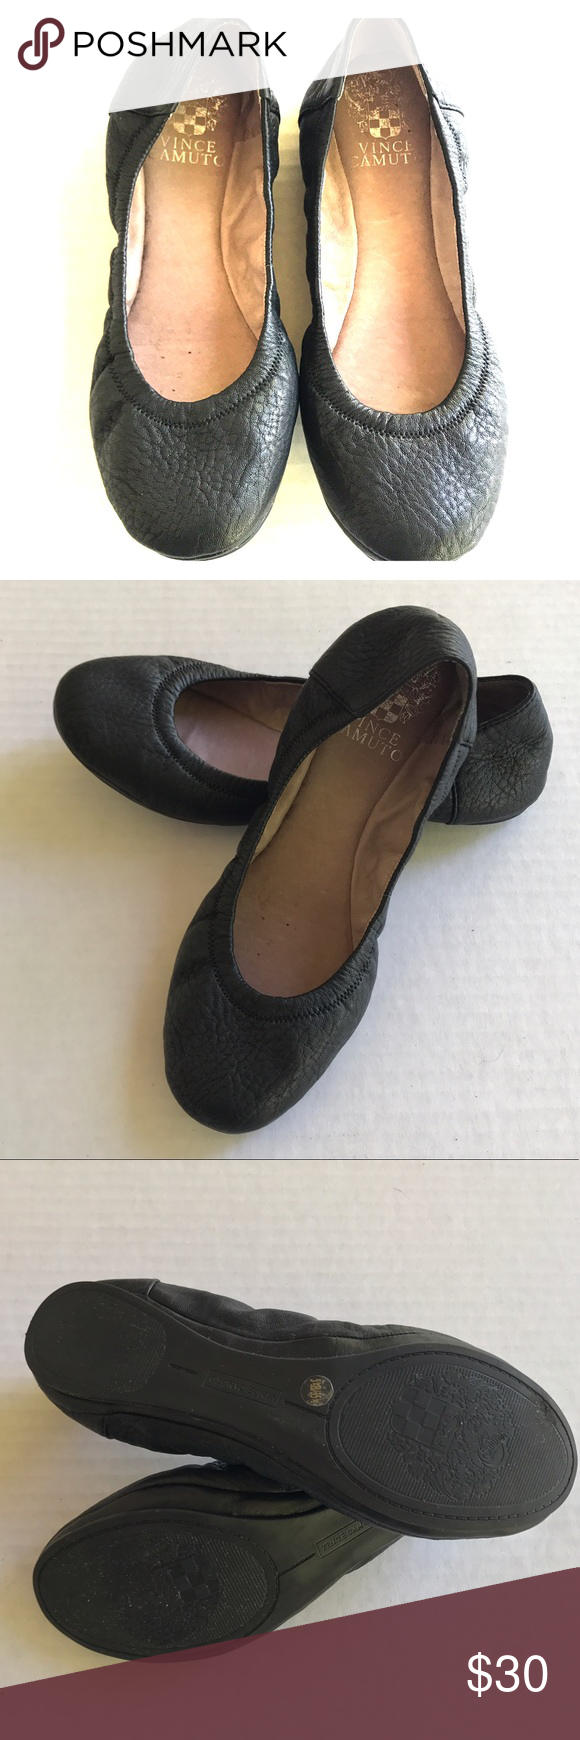 Vince Camuto Ballet Flats Super cute, comfy Black Vince camuto ballet flats size 5 1/2 in great conditions. Great for Jeans, shorts even dresses. Used a couple of times Vince Camuto Shoes Flats & Loafers